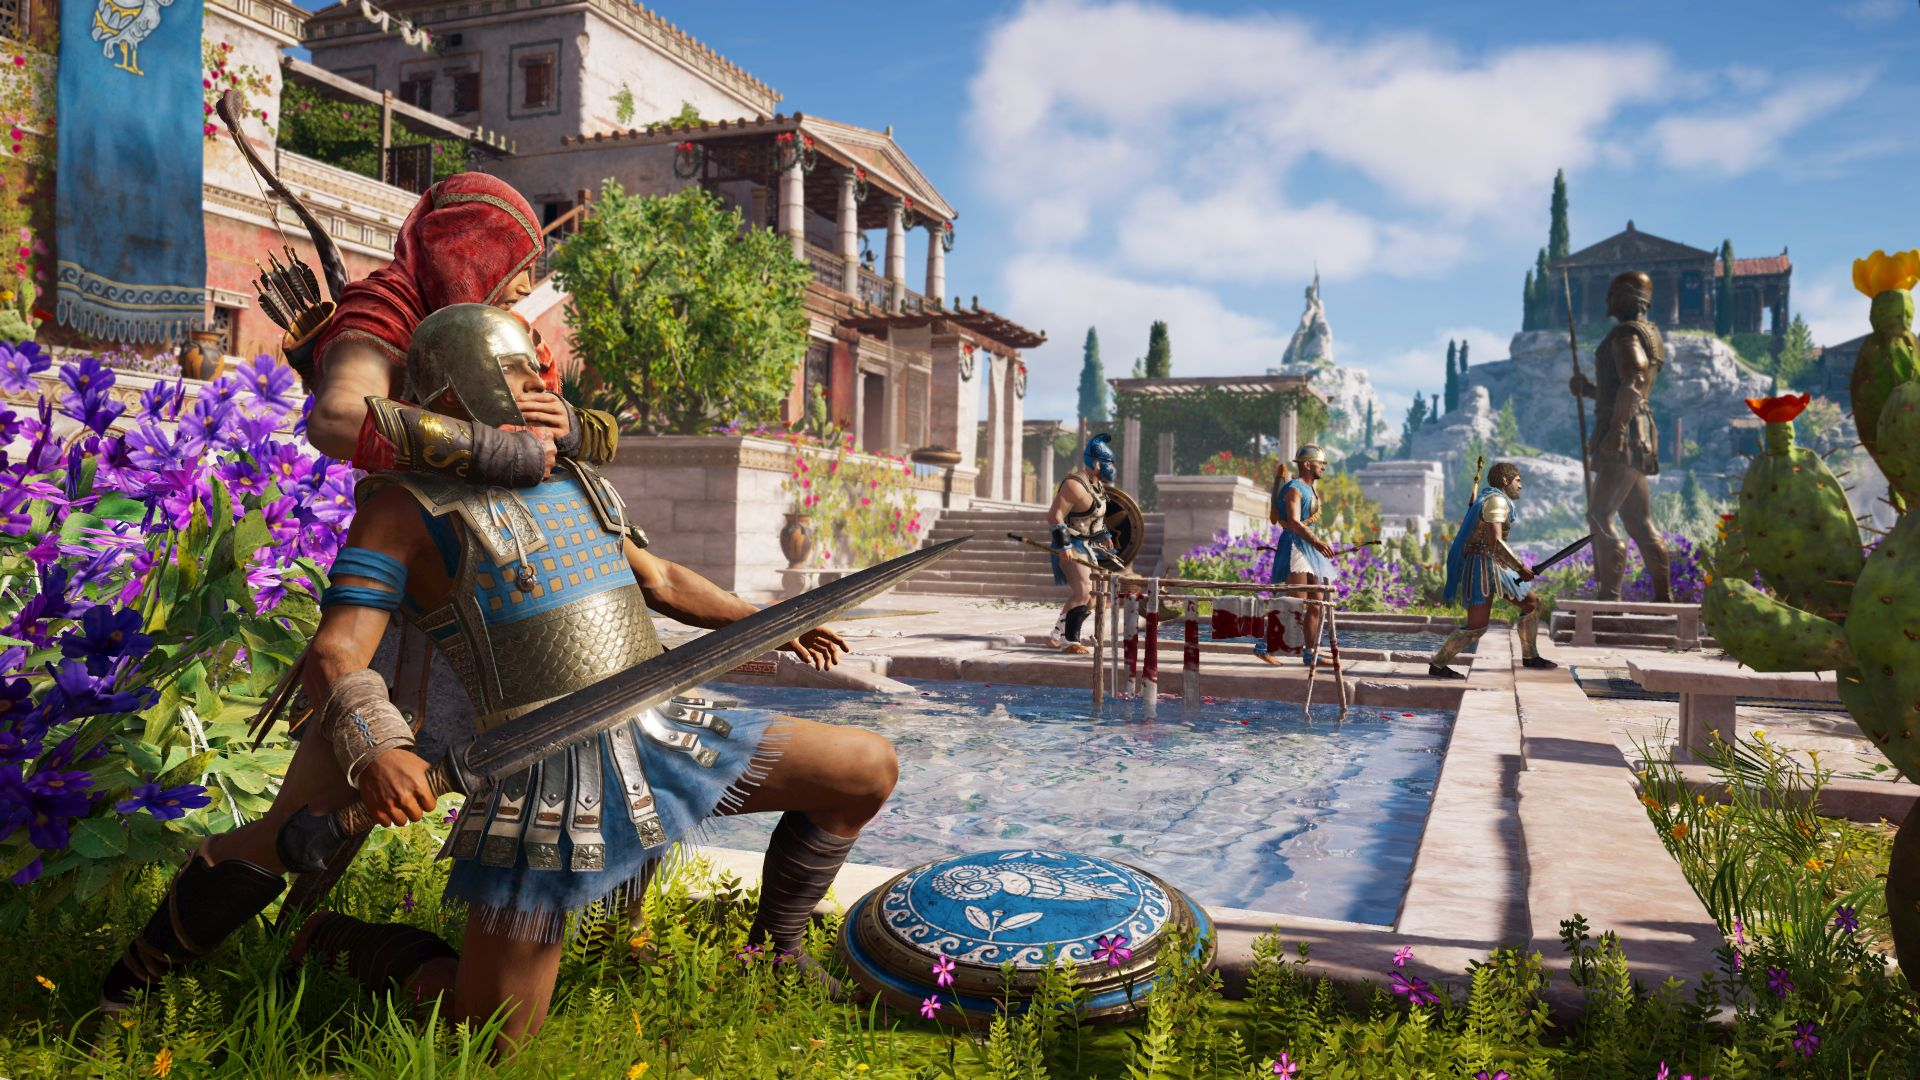 Assassin S Creed Odyssey Blends Bioware Style Choice With Metal Gear Solid 5 Base Management Vg247